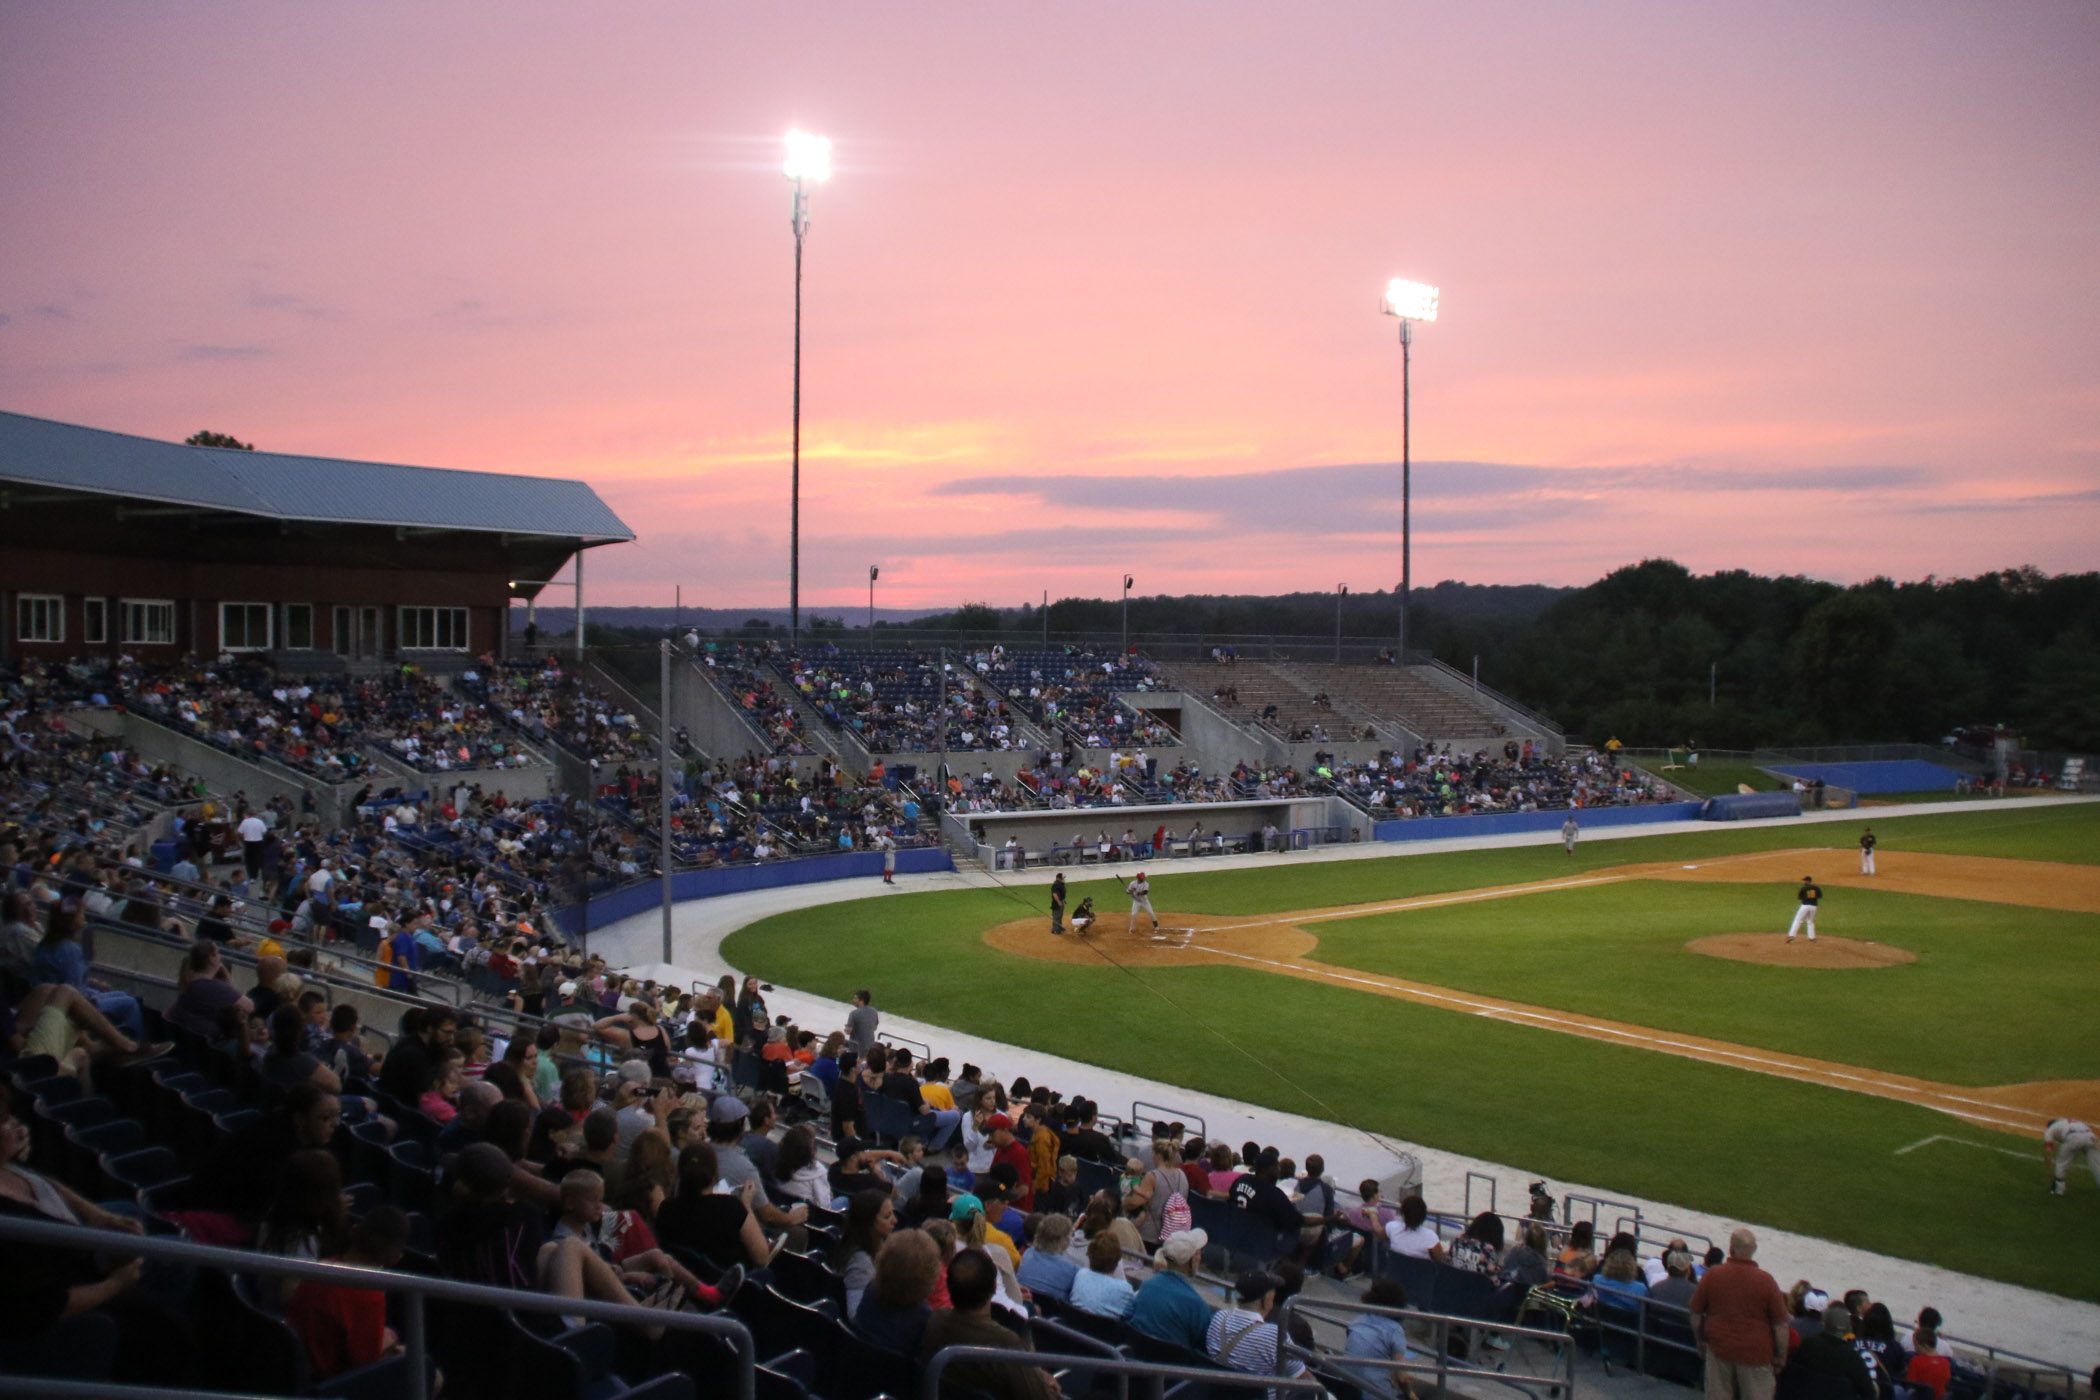 Twilight at Skylands Stadium